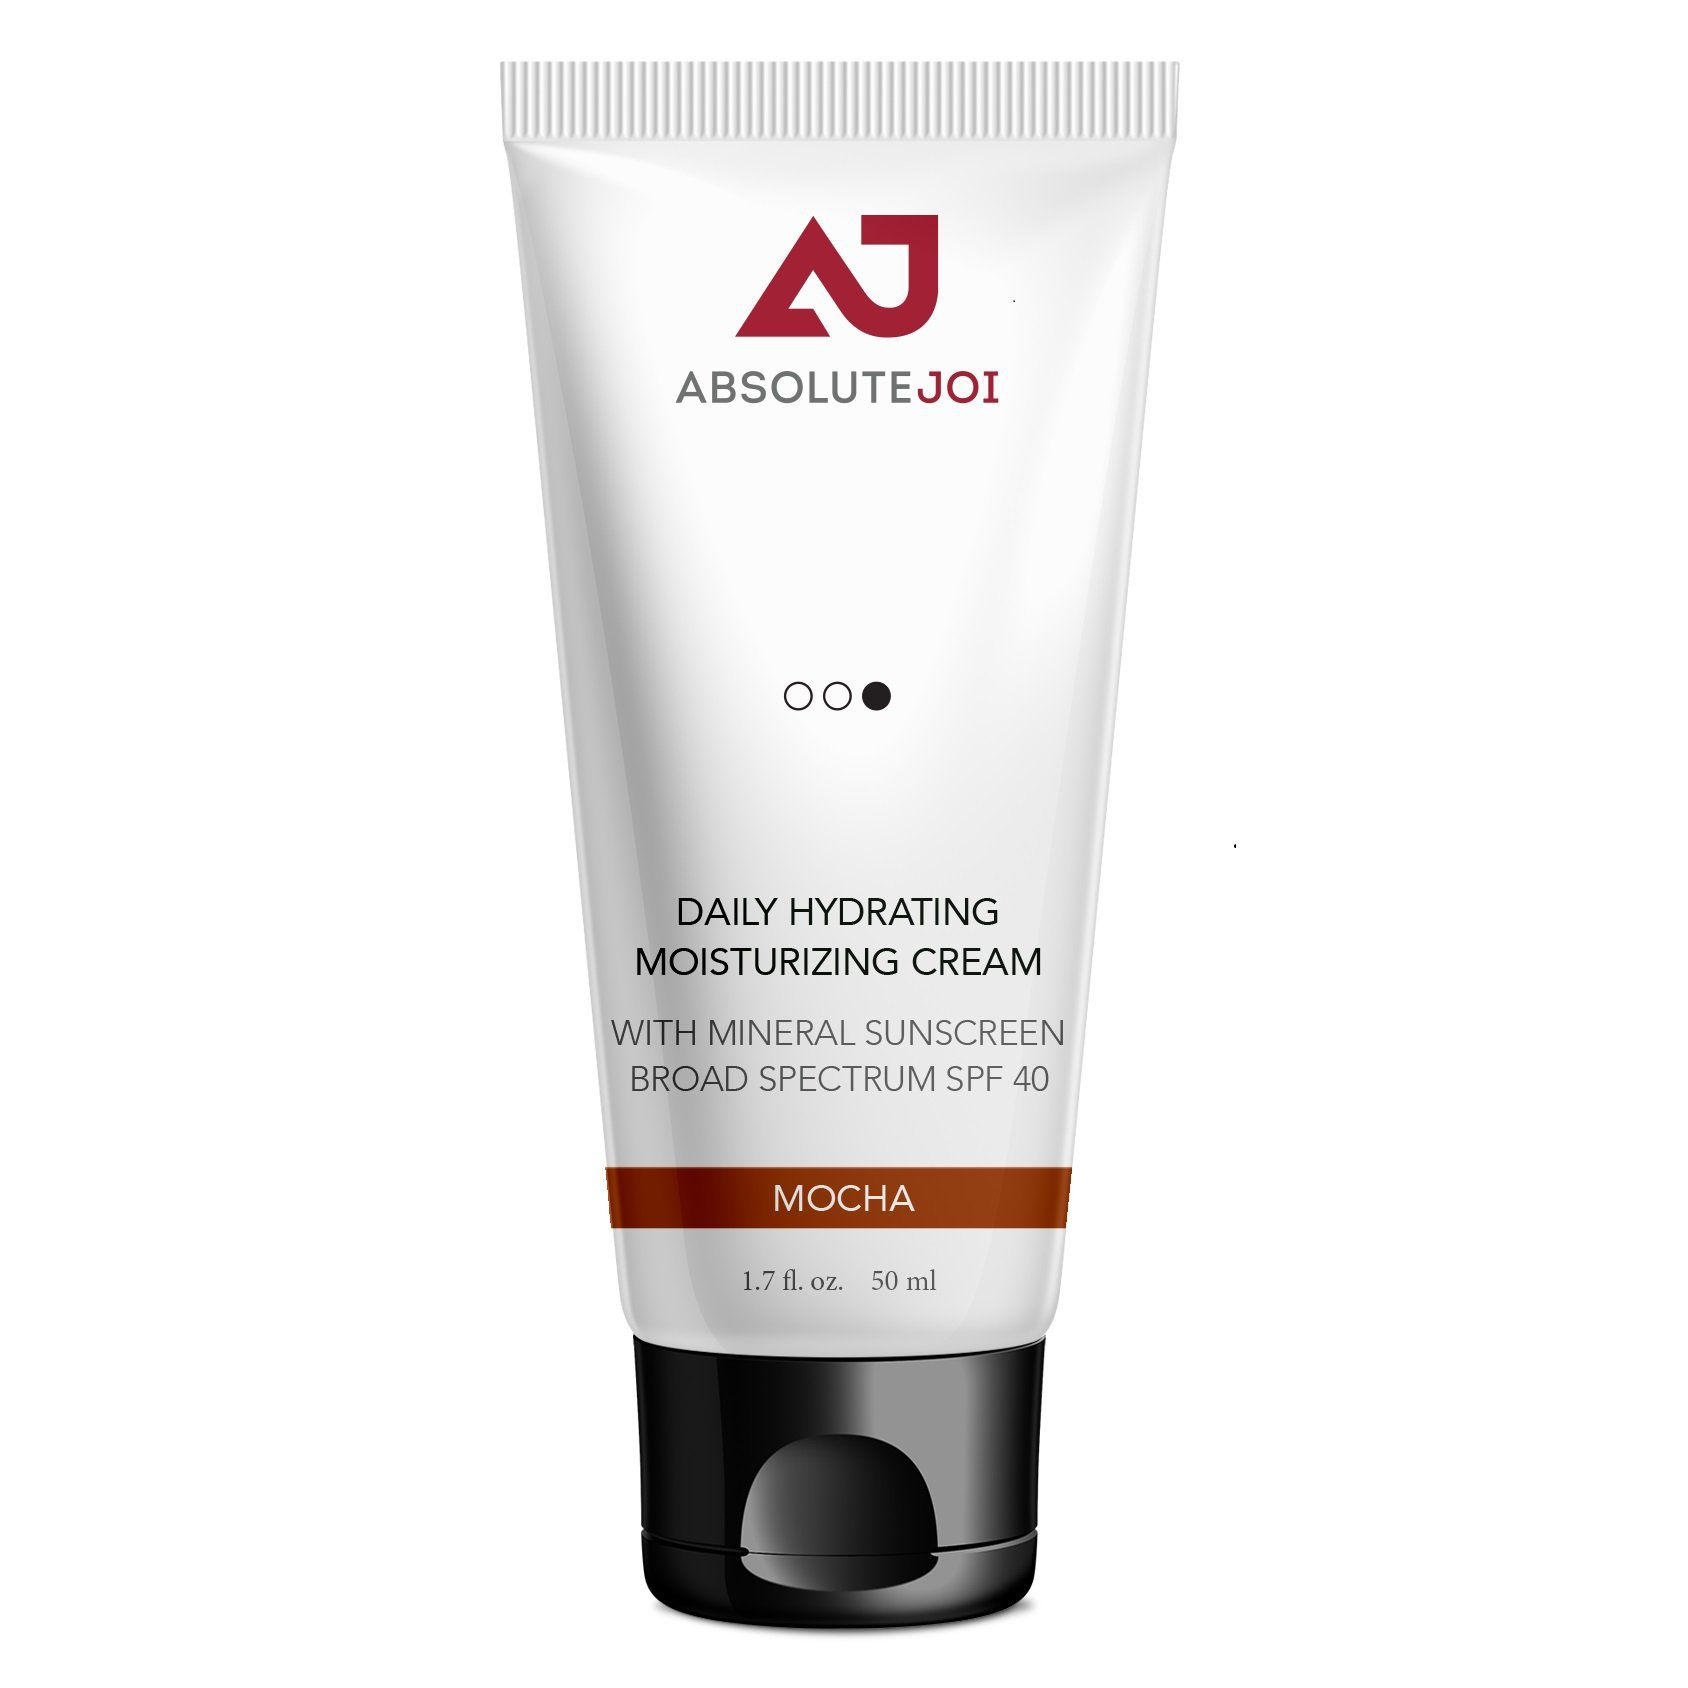 AbsoluteJOI Daily Hydrating Moisturizing Cream with Mineral Sunscreen Broad Spectrum SPF 40